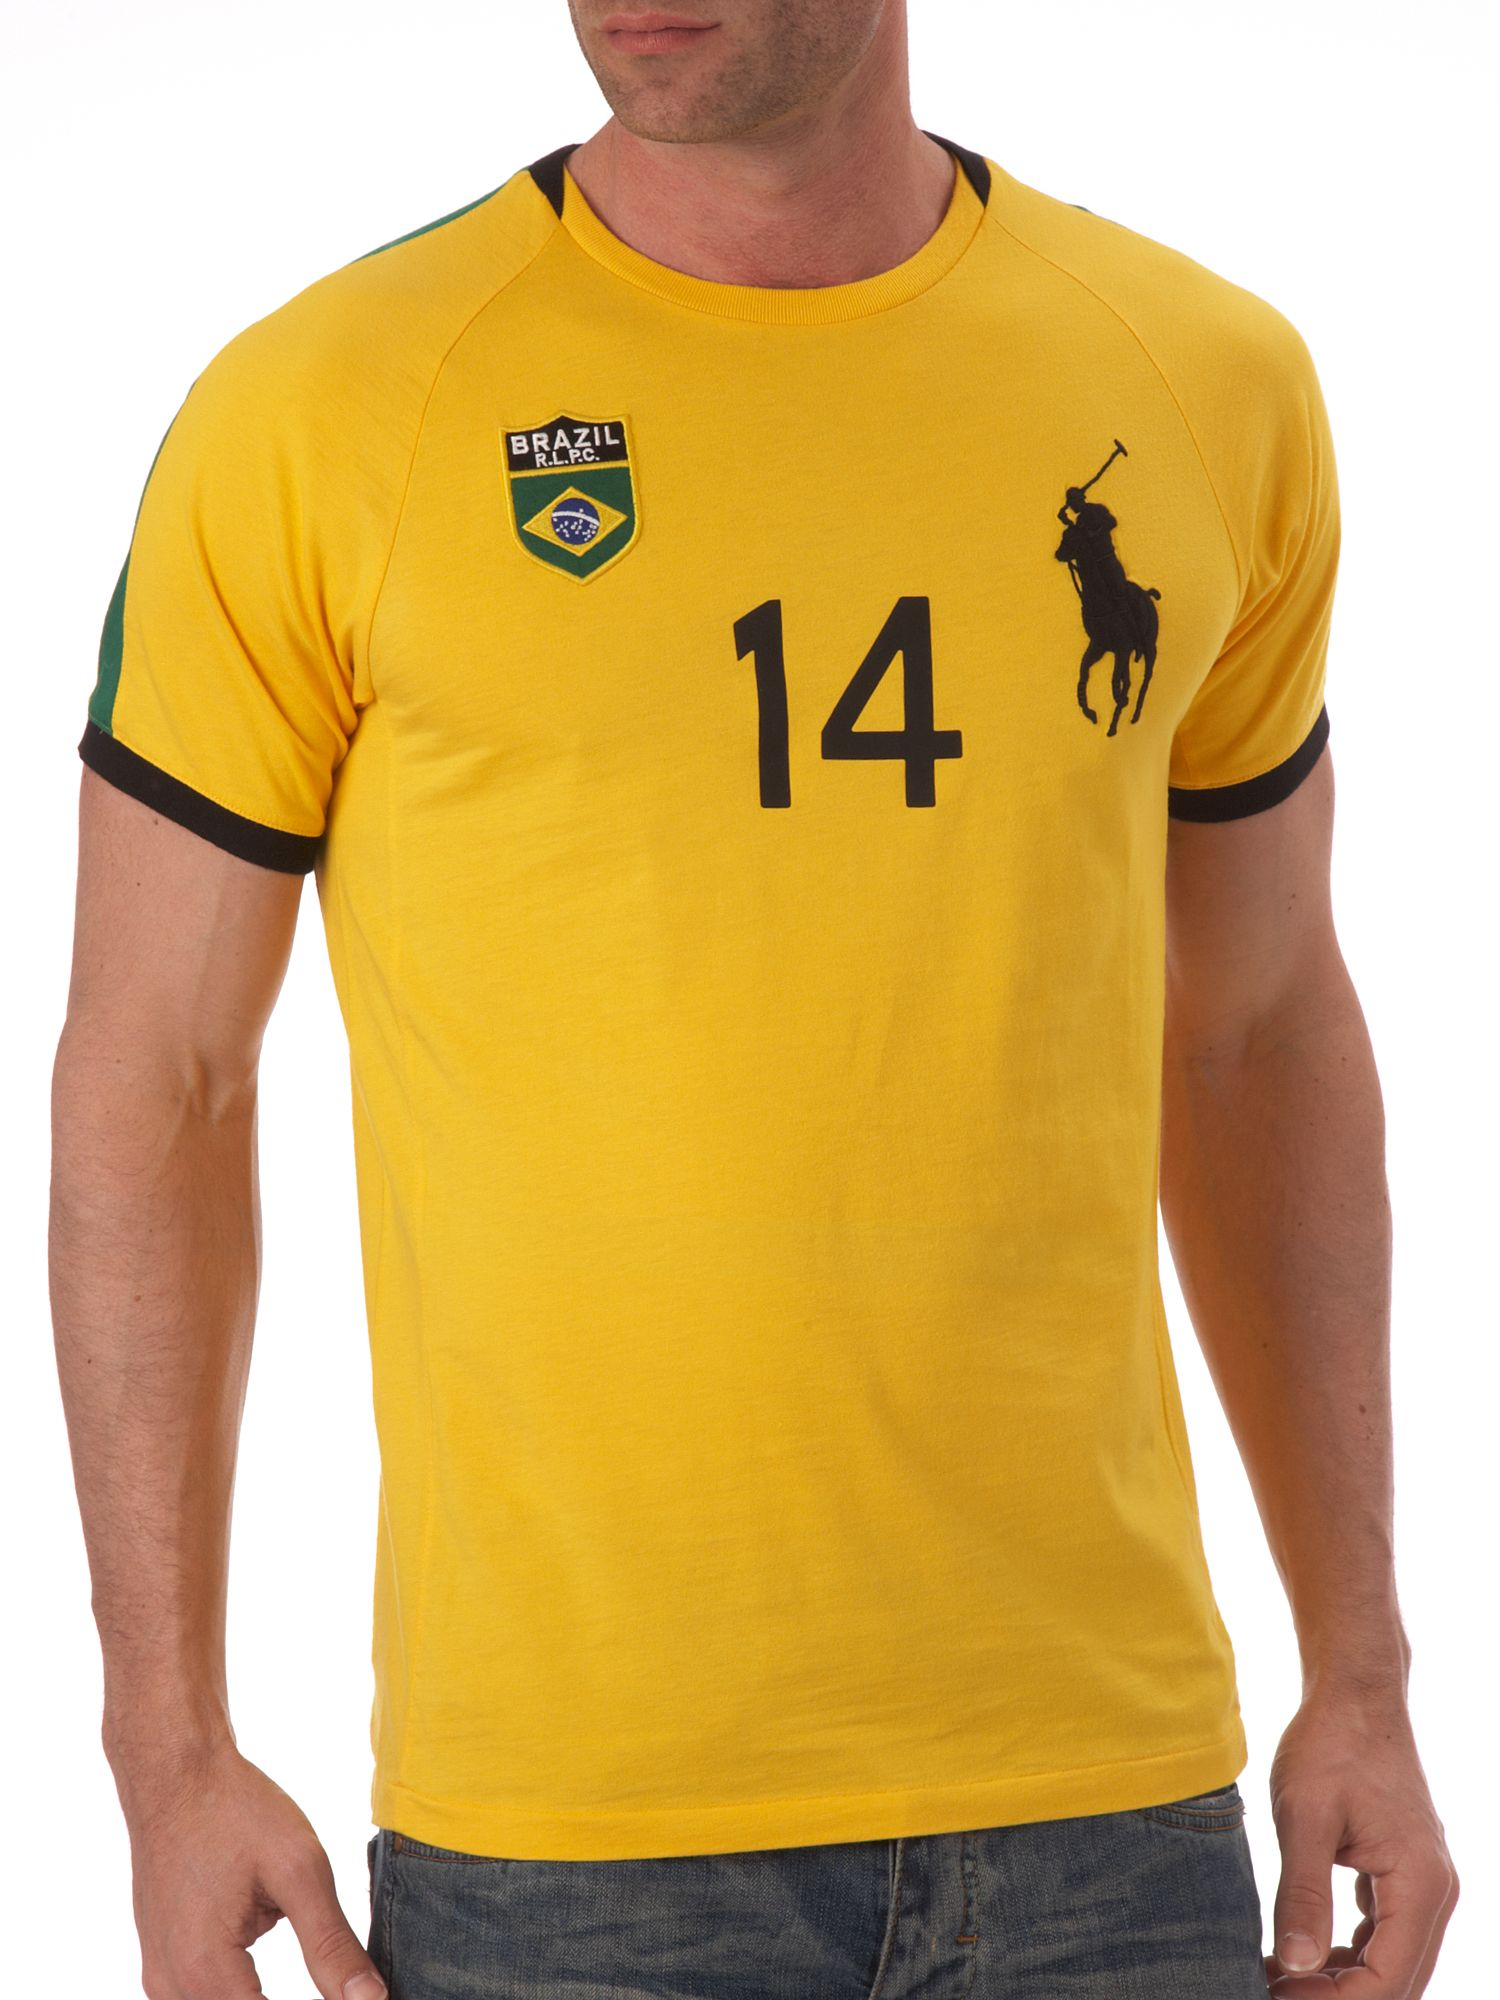 Ralph Lauren Brazil custom fitted T-shirt Yellow product image